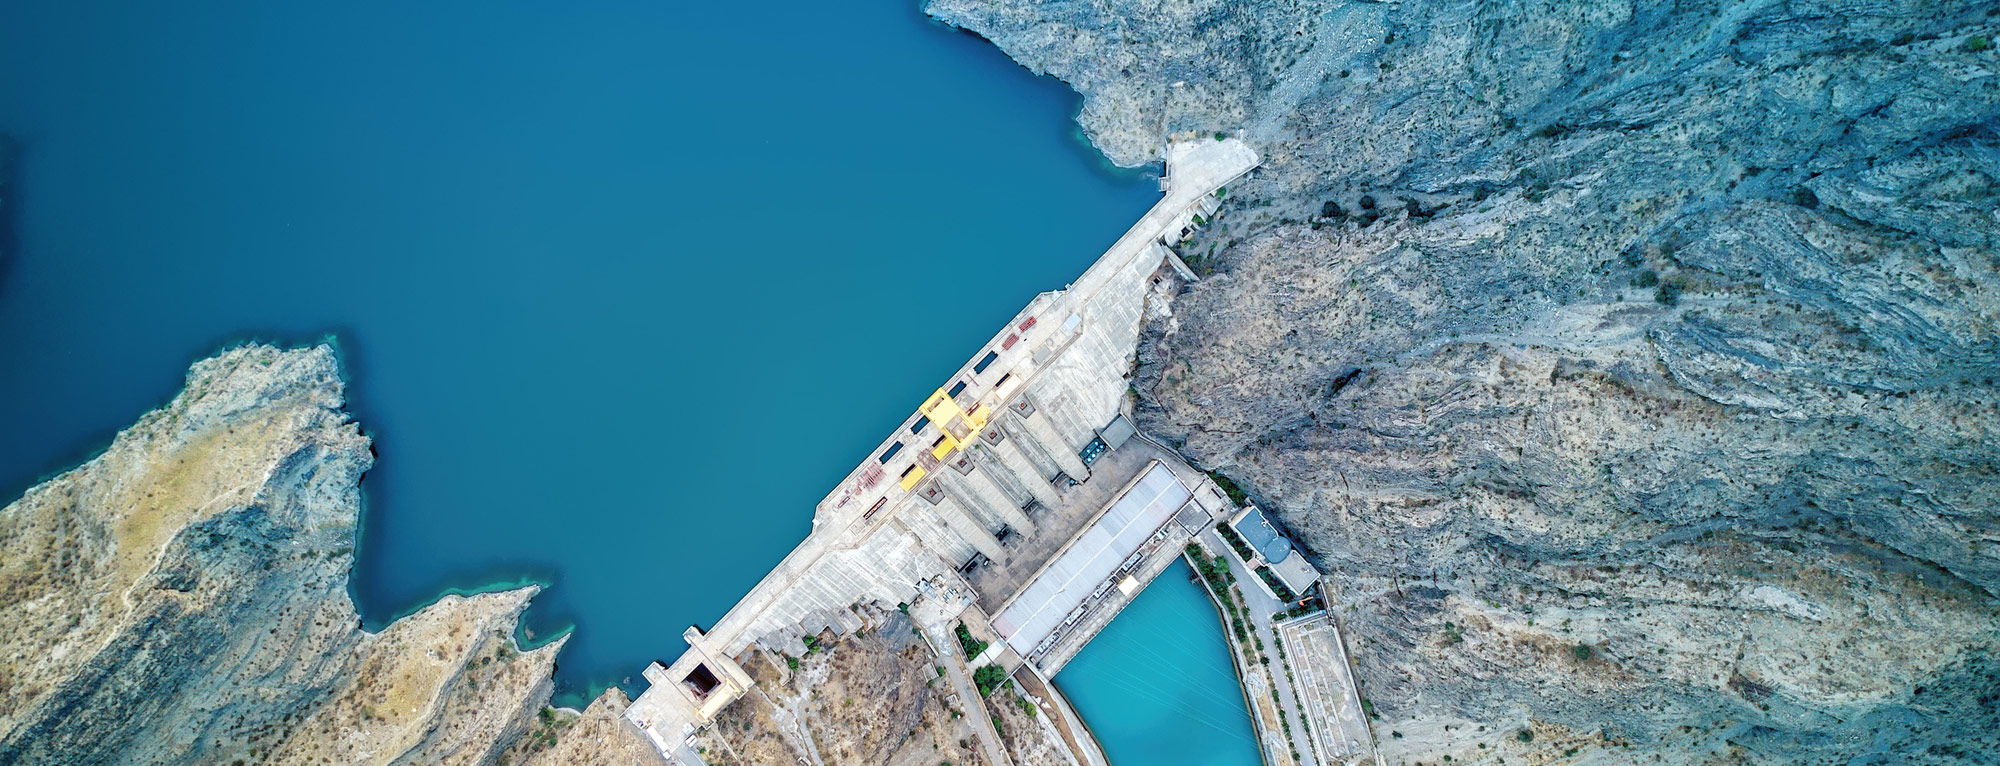 70 Years Forward: Water and hydropower